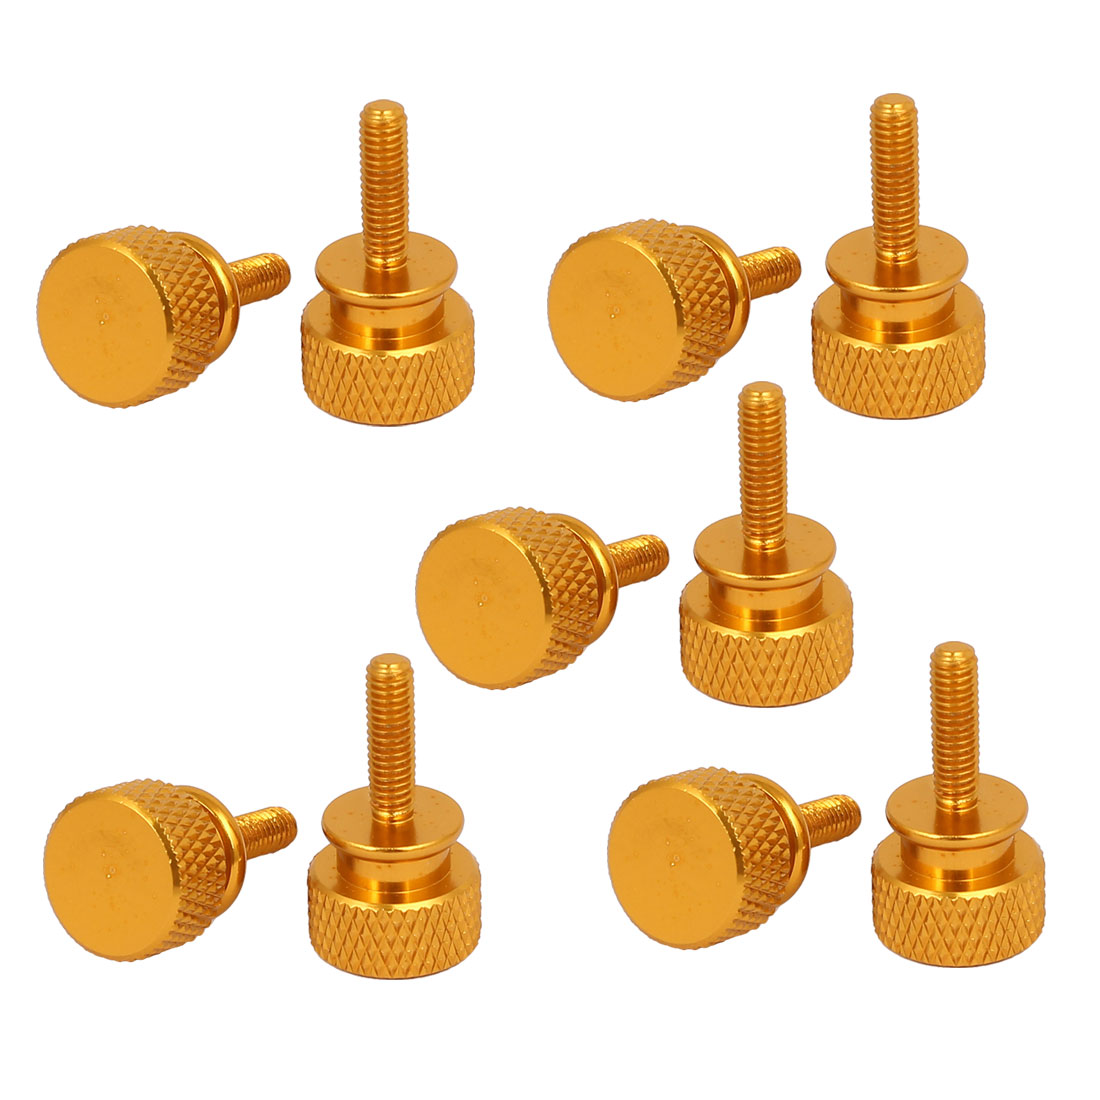 Computer PC Case Fully Threaded Knurled Thumb Screws Gold Tone M3.5x12mm 10pcs